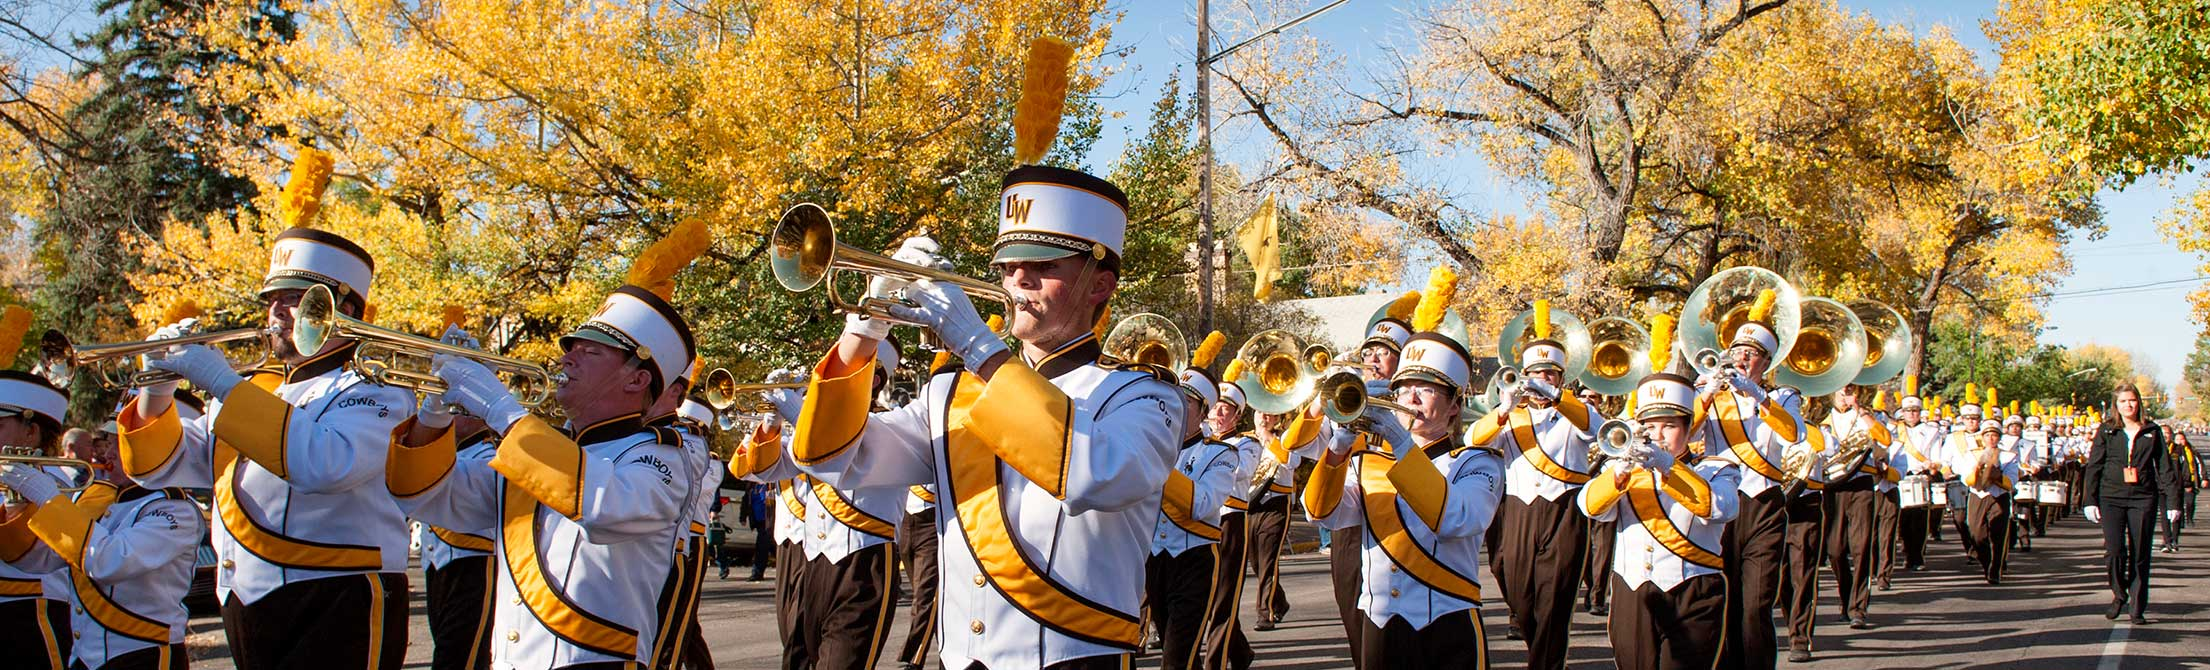 Marching Band at a parade